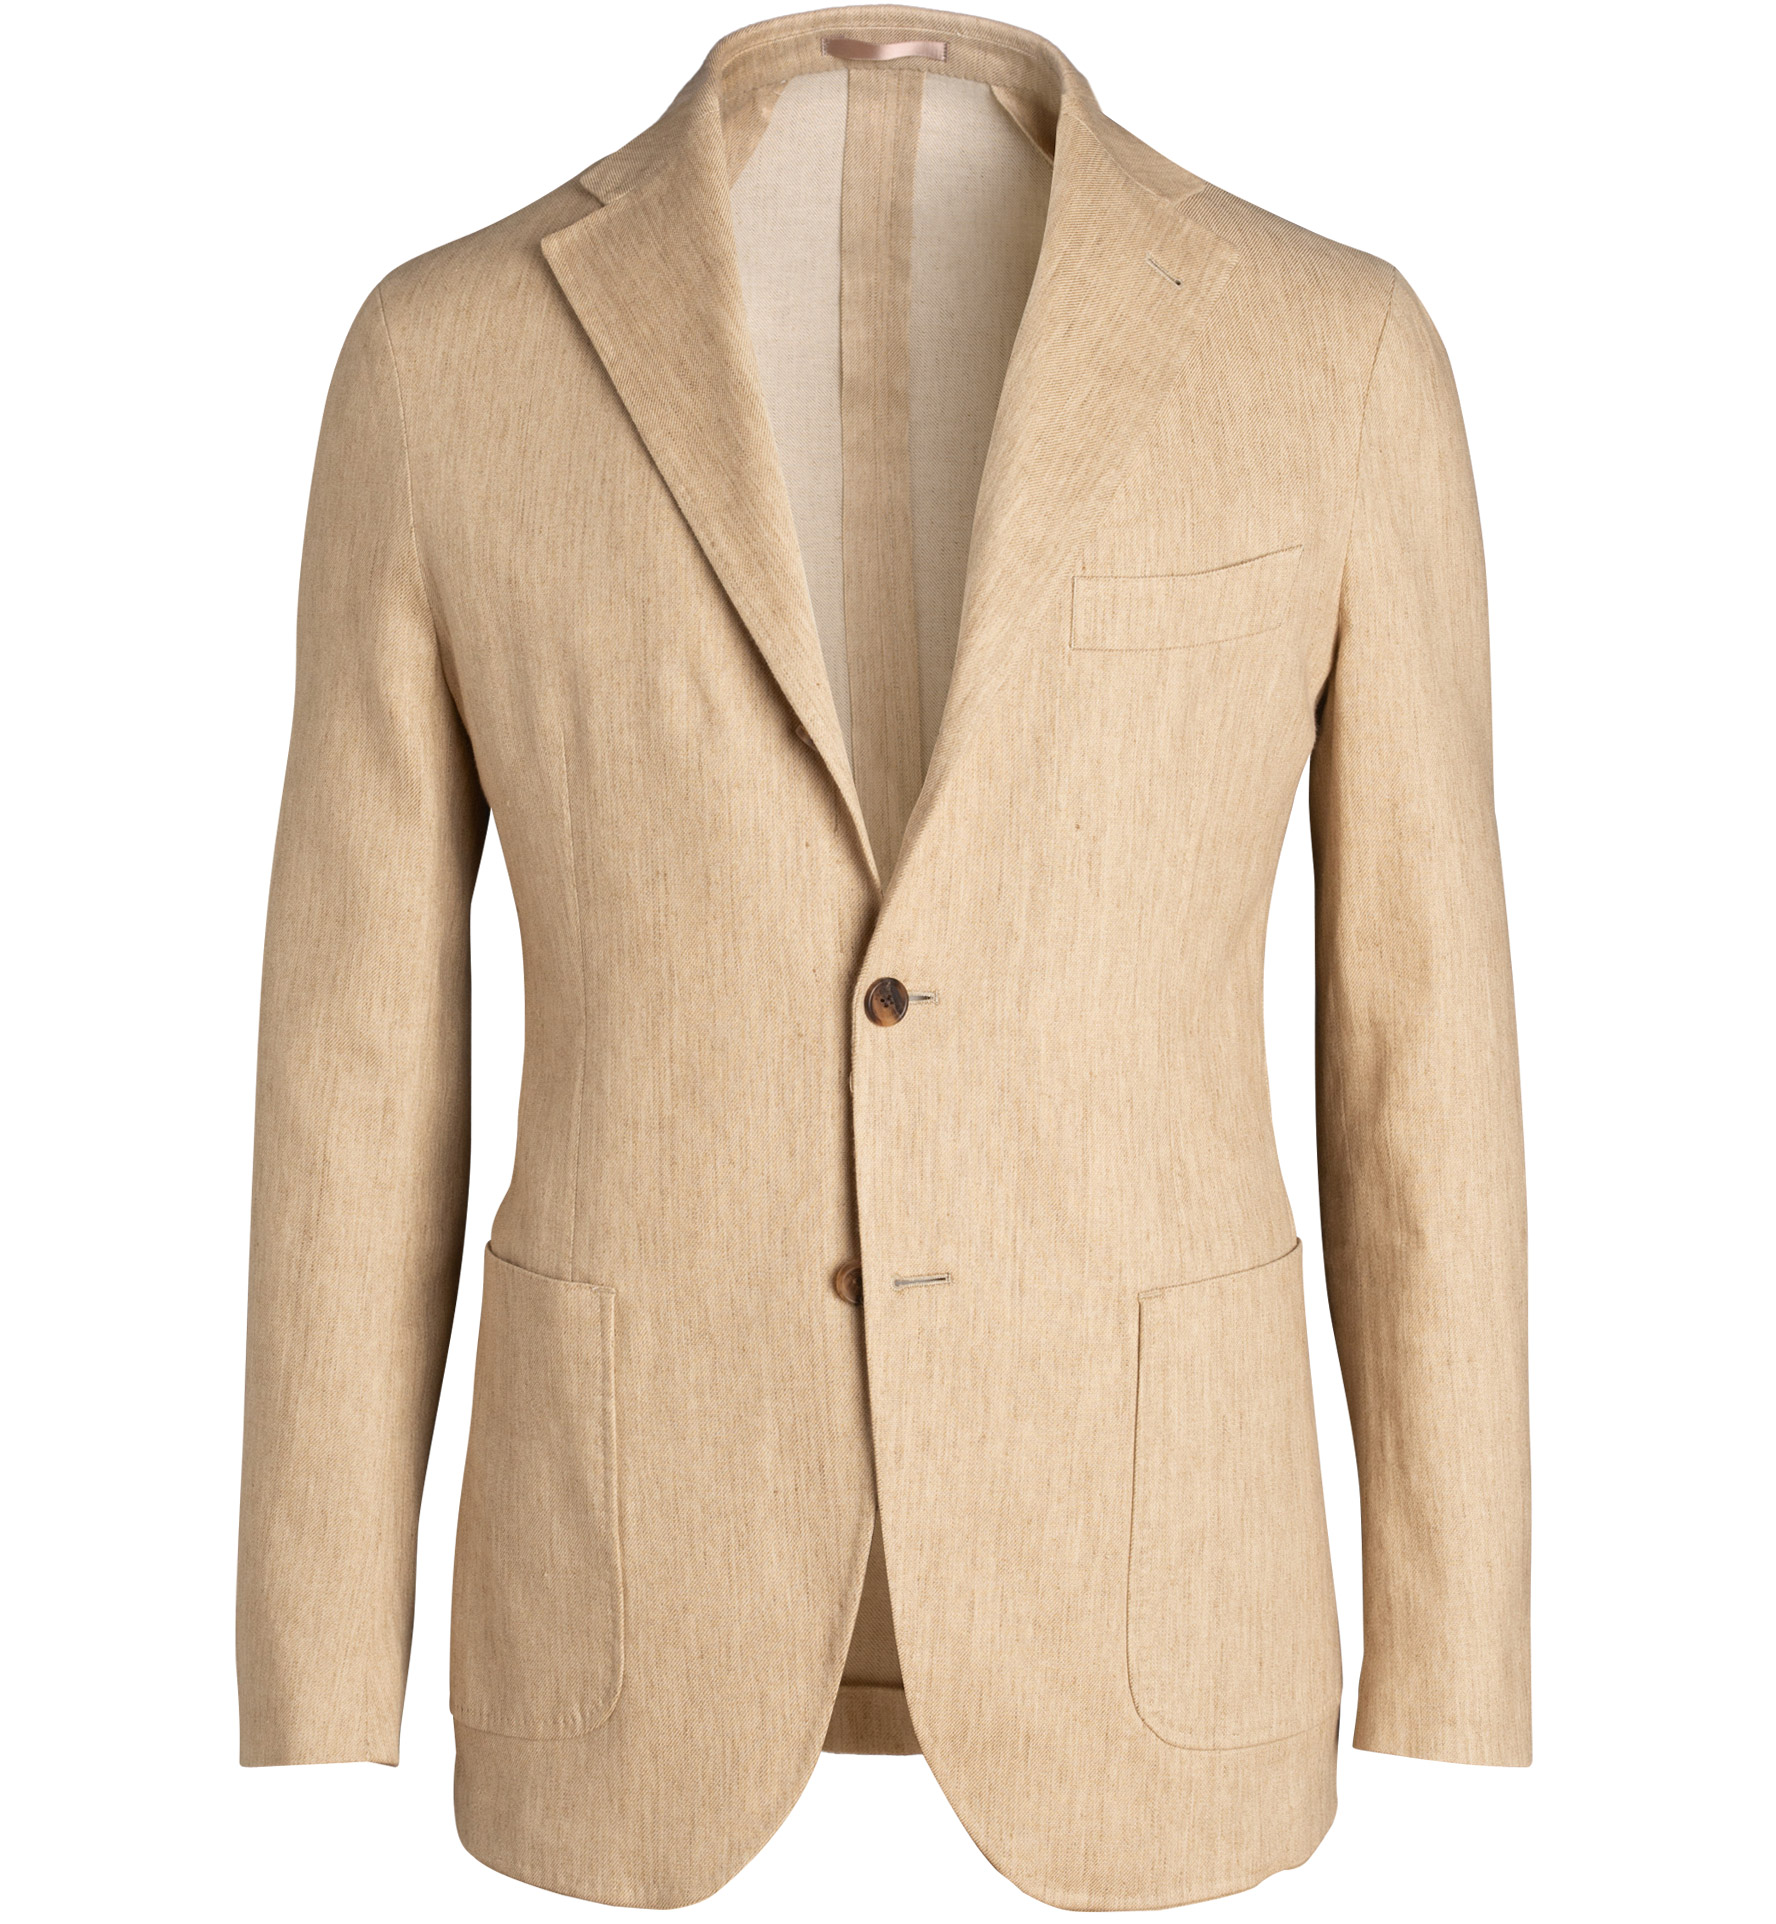 Zoom Image of Waverly Beige Stretch Cotton and Linen Twill Jacket